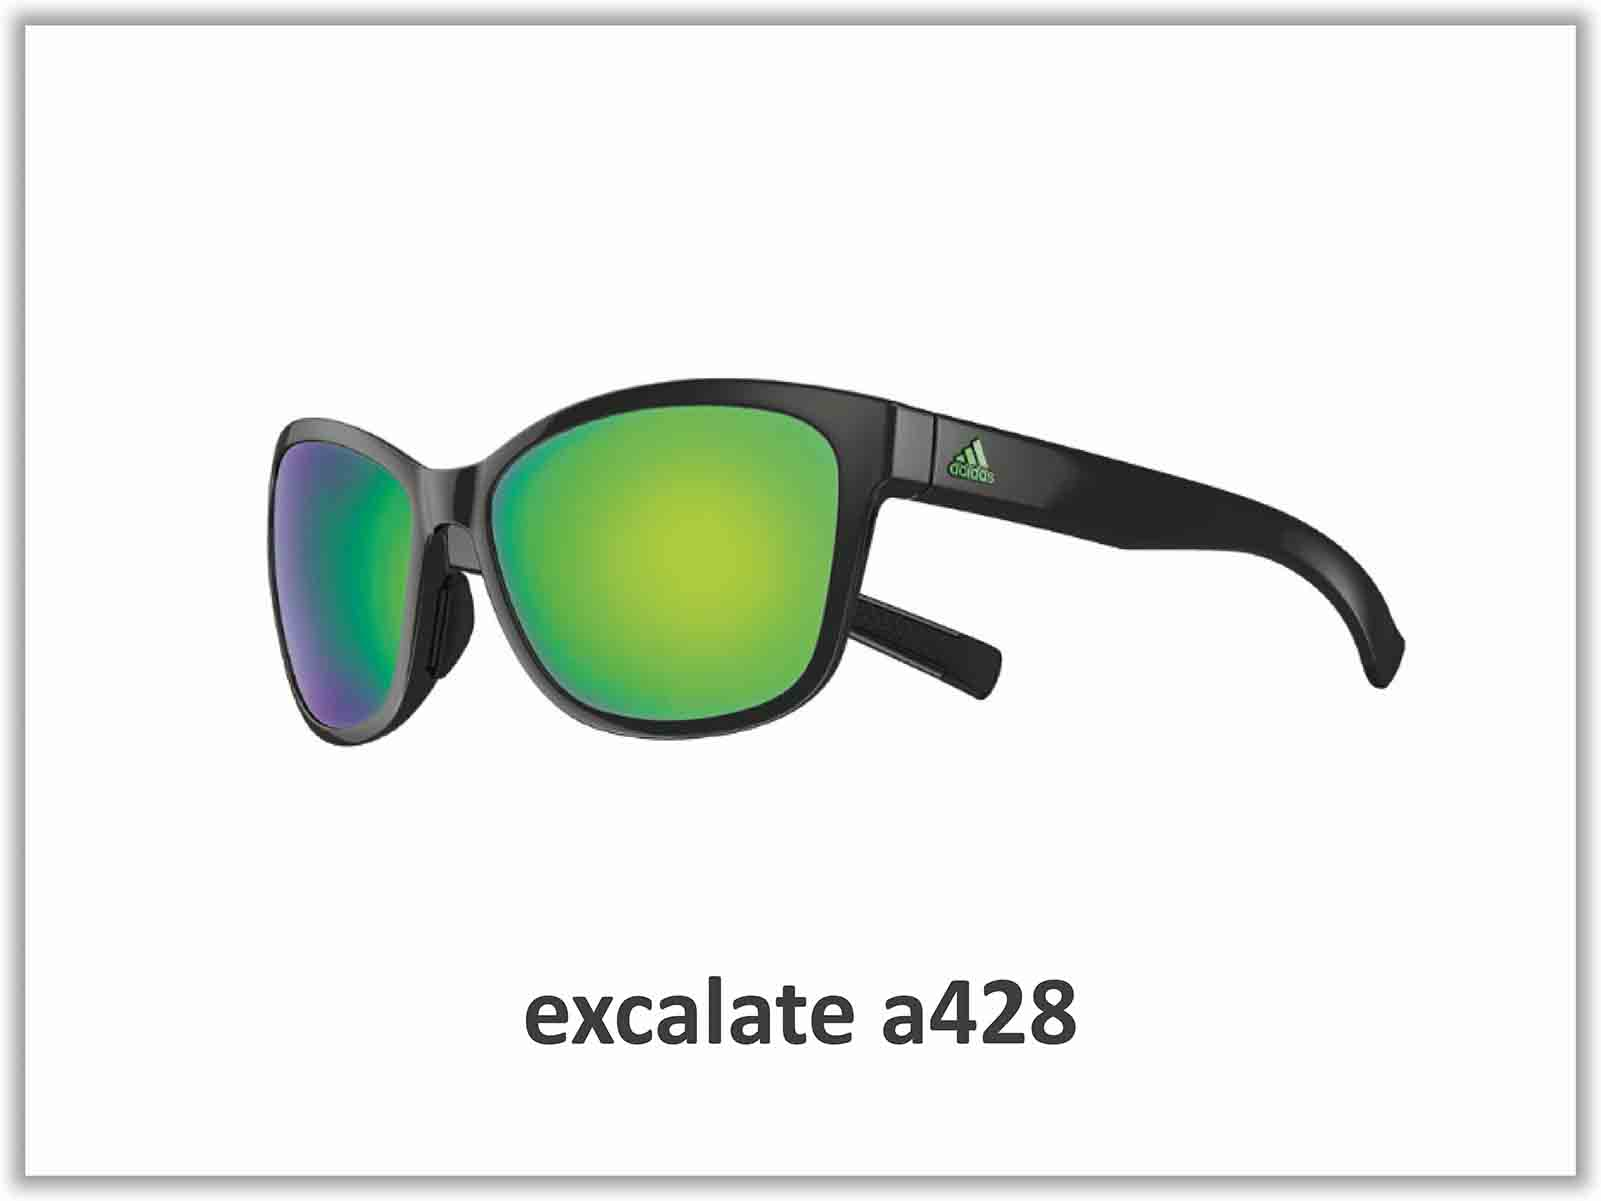 excalate-a428